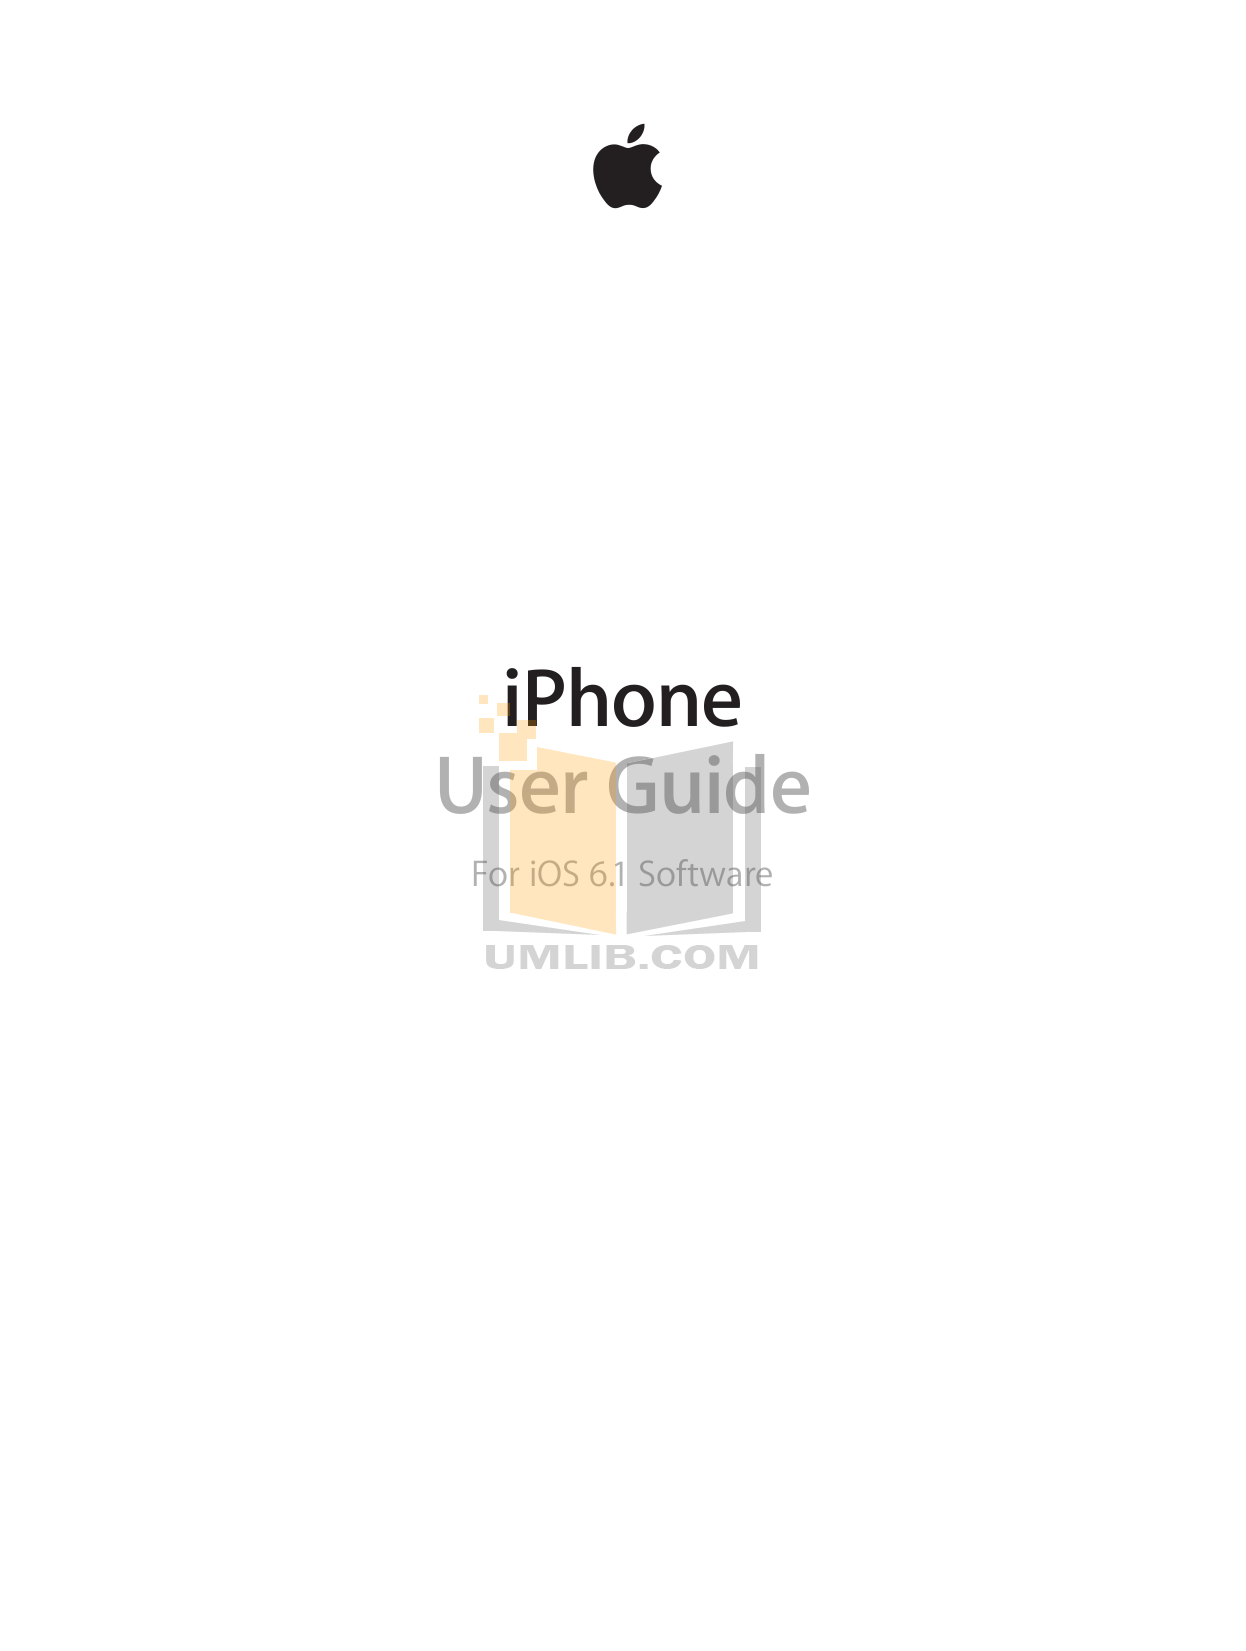 pdf manual for apple cell phone iphone 4 iphone 4 32gb verizon rh umlib com iphone 4 pdf manual iphone 4 pdf manual download